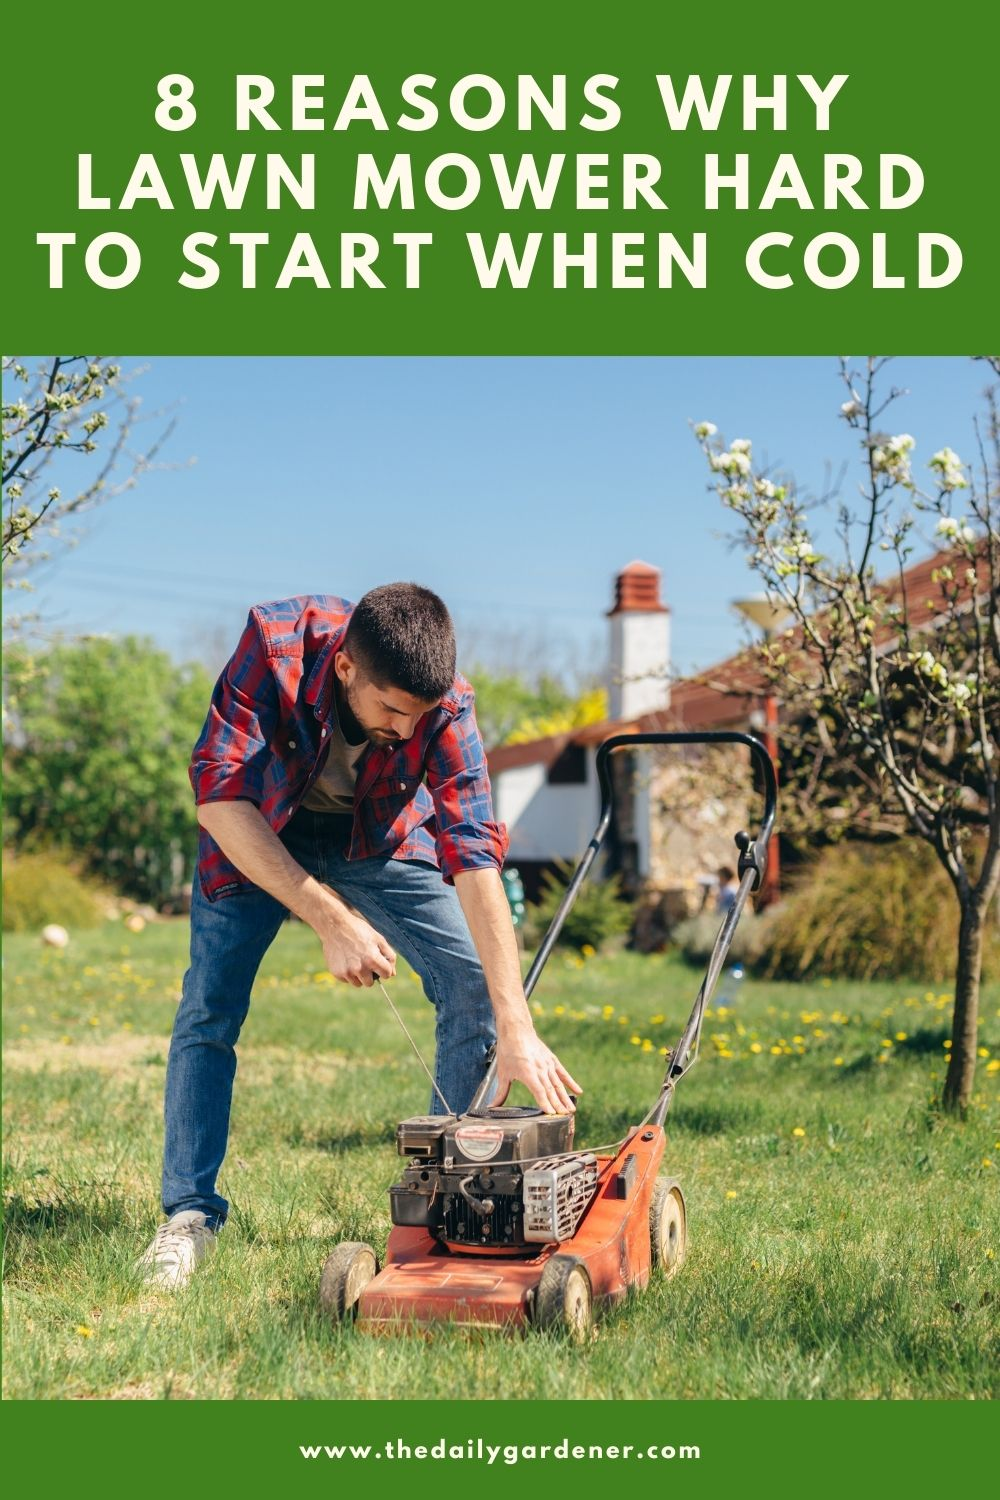 8 Reasons Why Lawn Mower Hard to Start When Cold 1